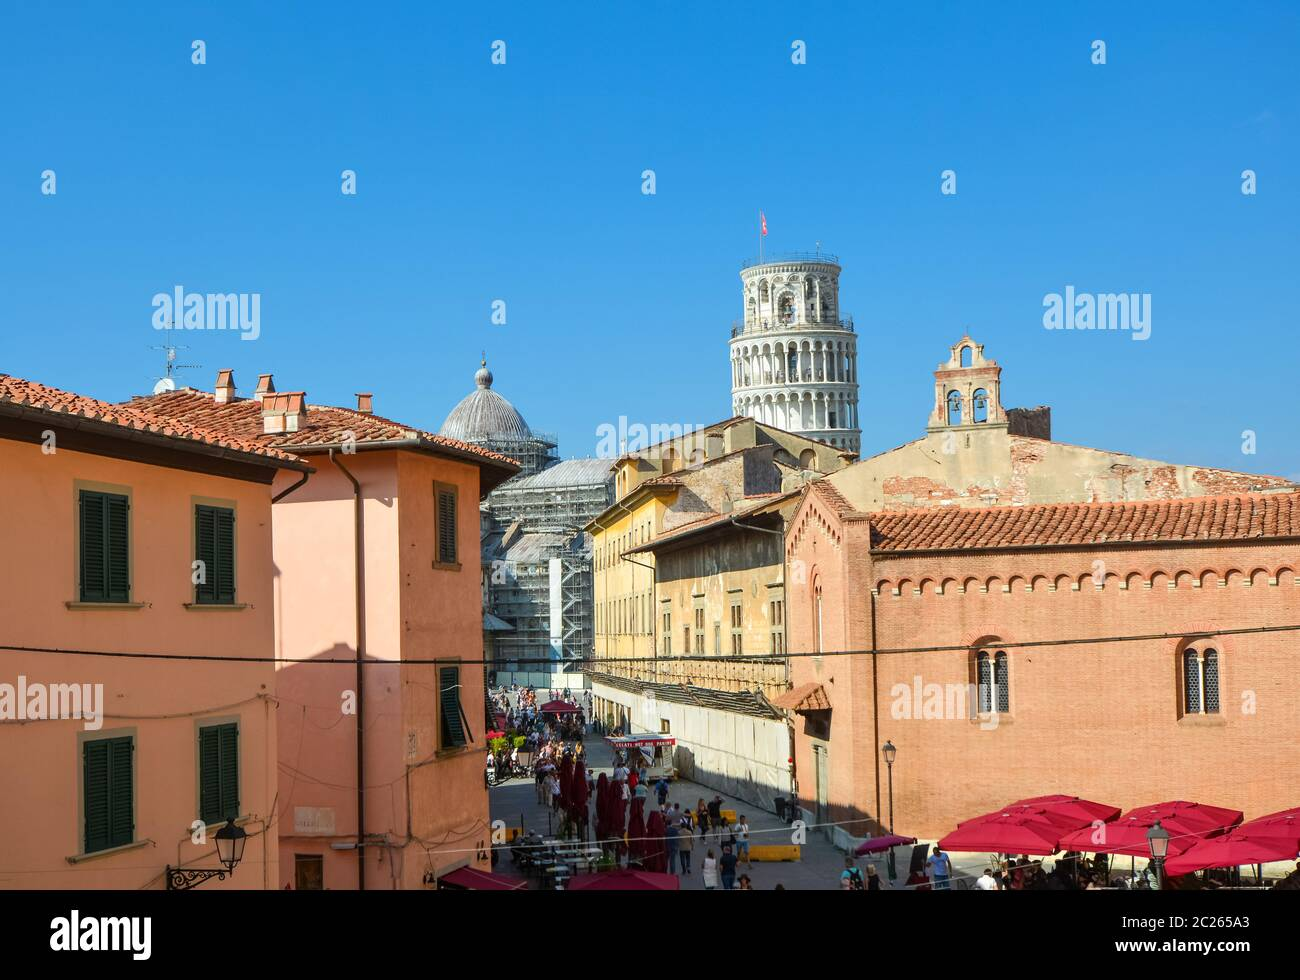 Tourists enjoy afternoon sightseeing on the Via Santa Maria, the busy tourist street leading to the Leaning tower of Pisa in the Tuscany area of Italy Stock Photo